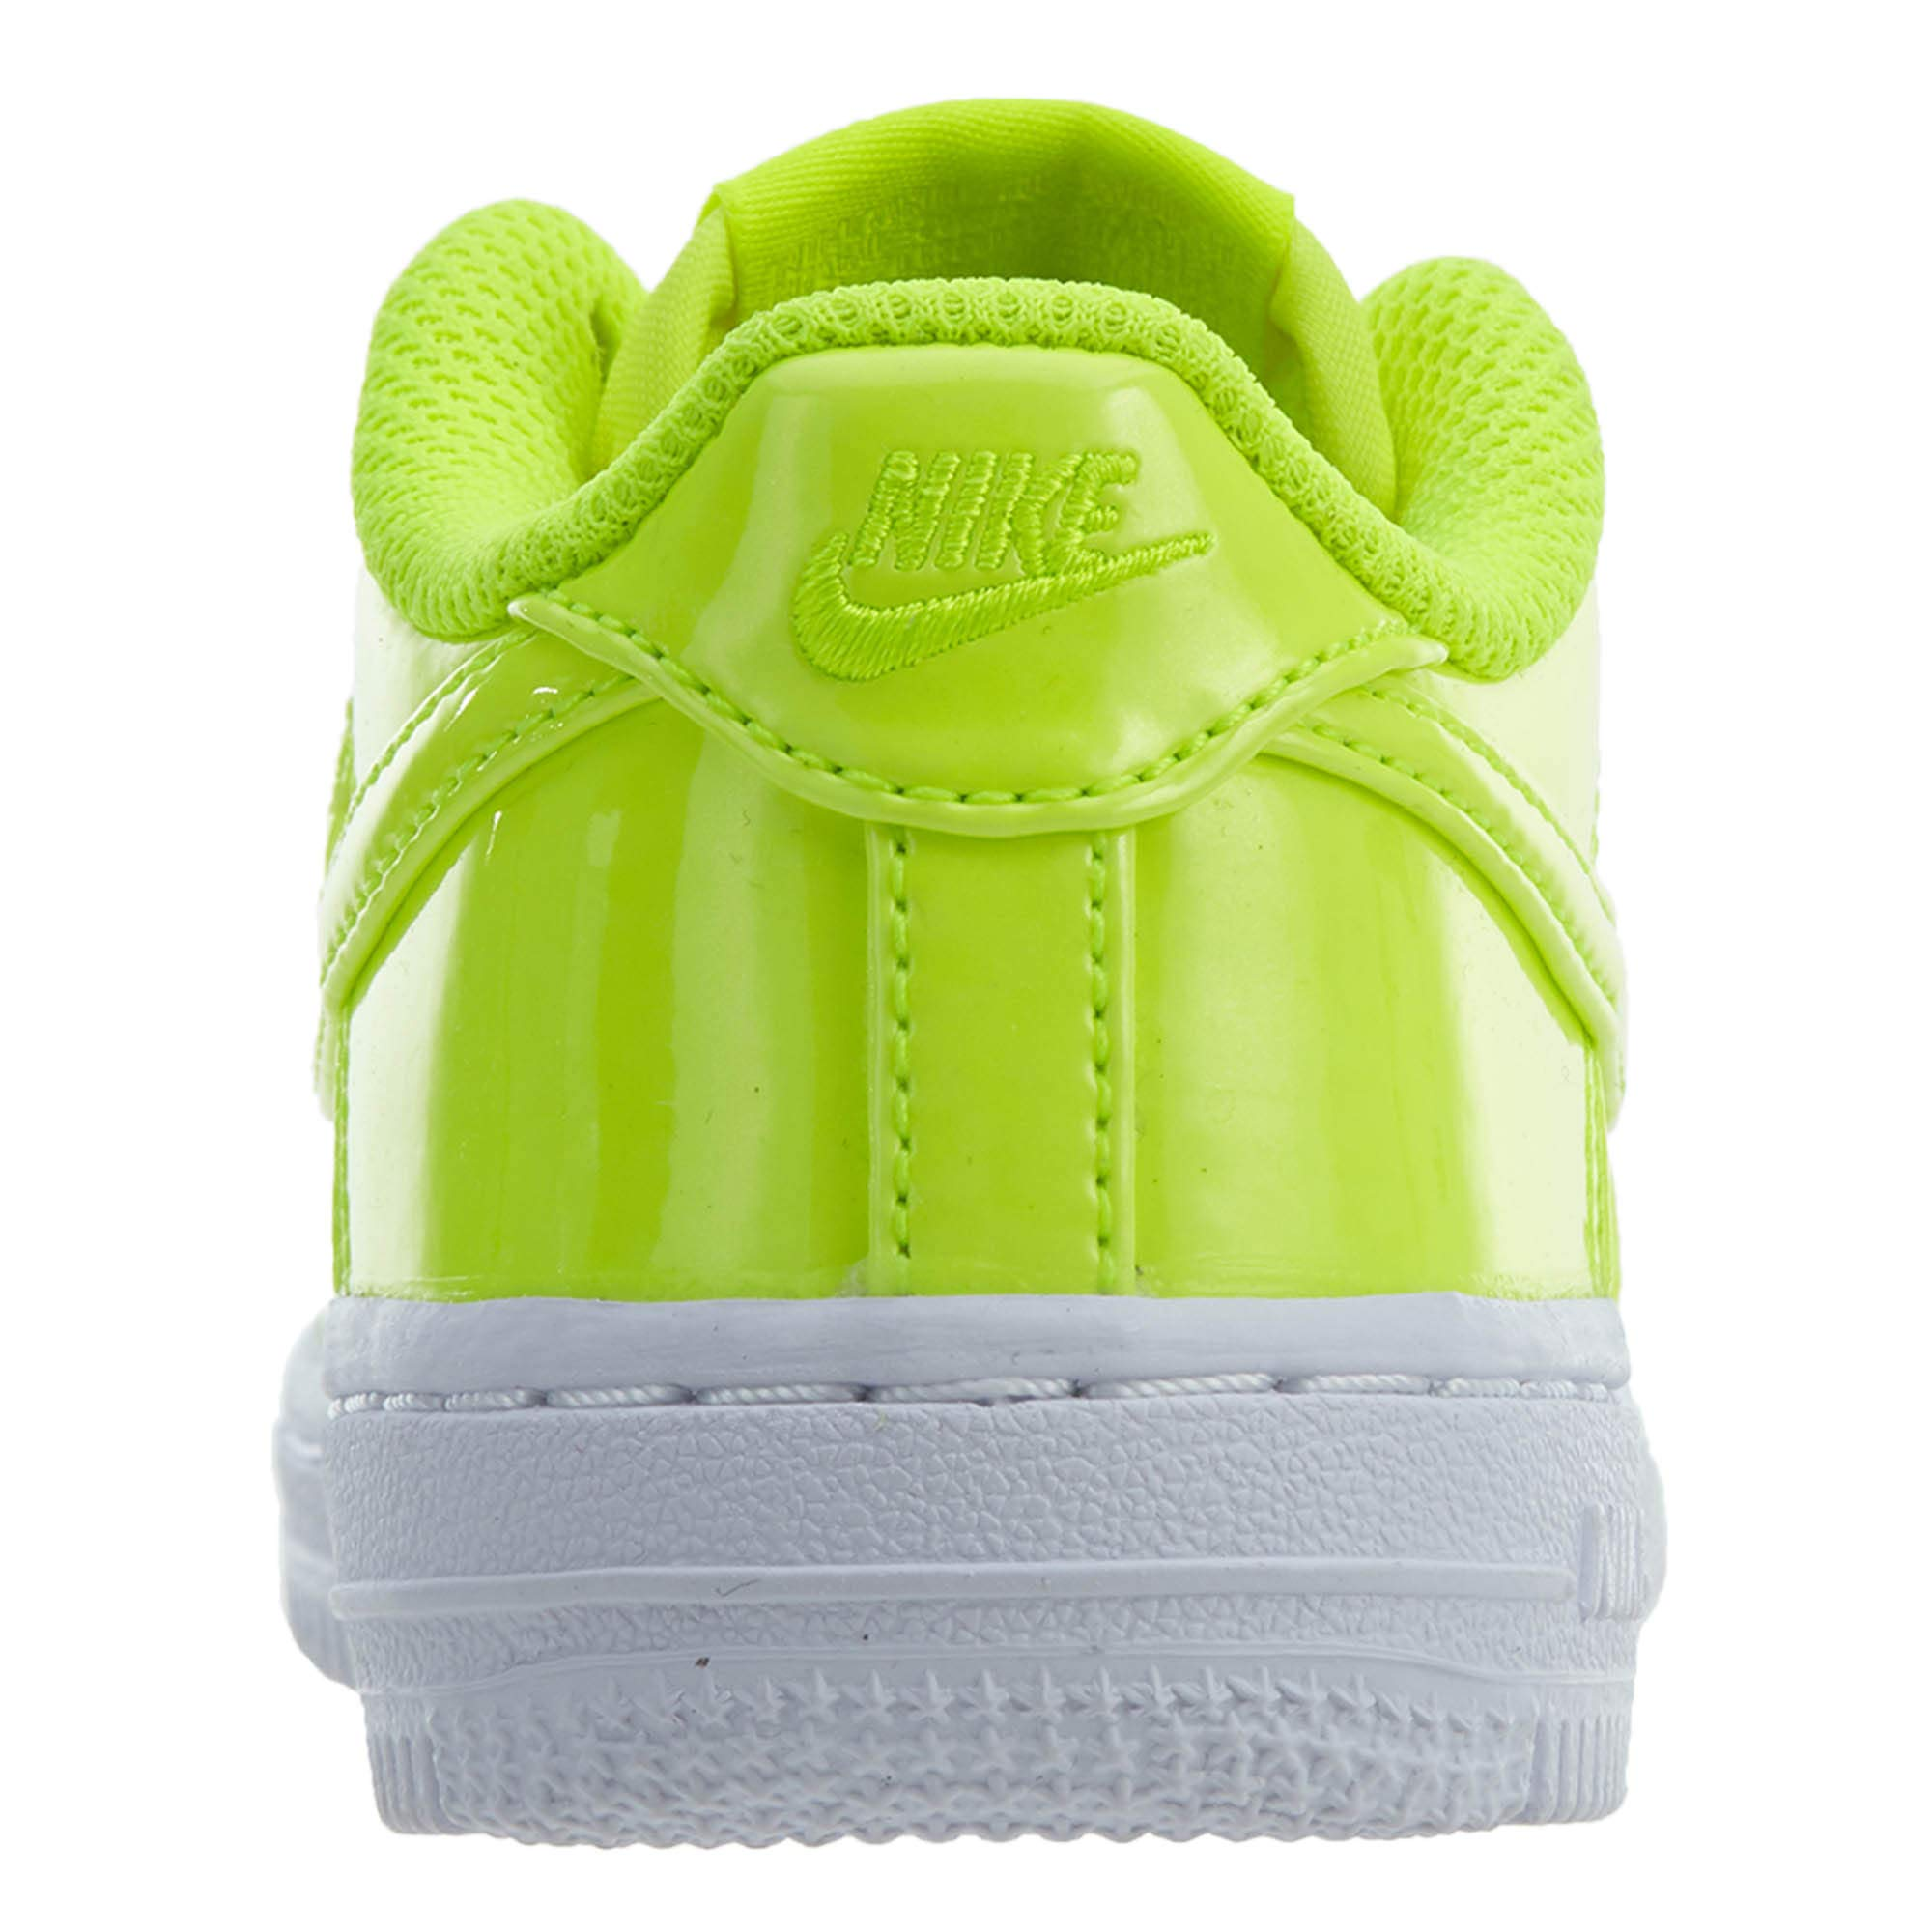 Nike Force 1 Lv8 Uv Toddlers Style: AO2288-700 Size: 6 by Nike (Image #3)